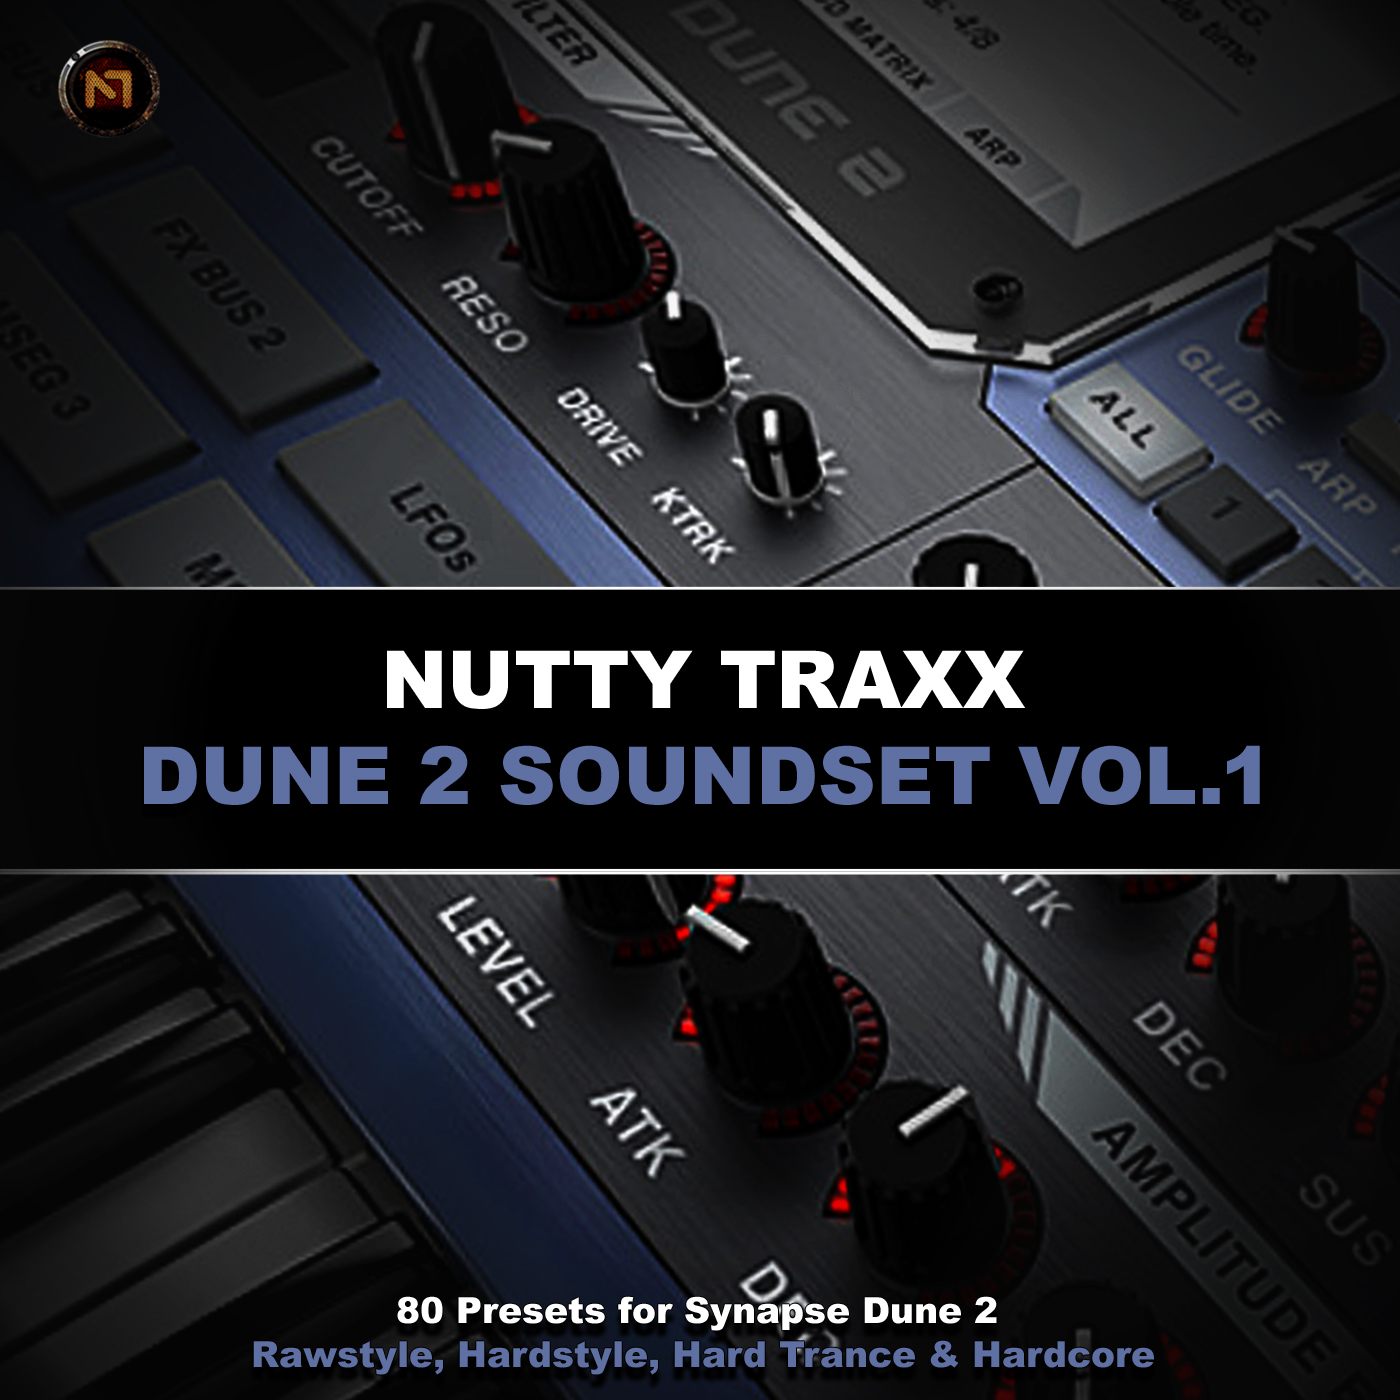 Nutty Traxx - Dune 2 Soundset Vol.1